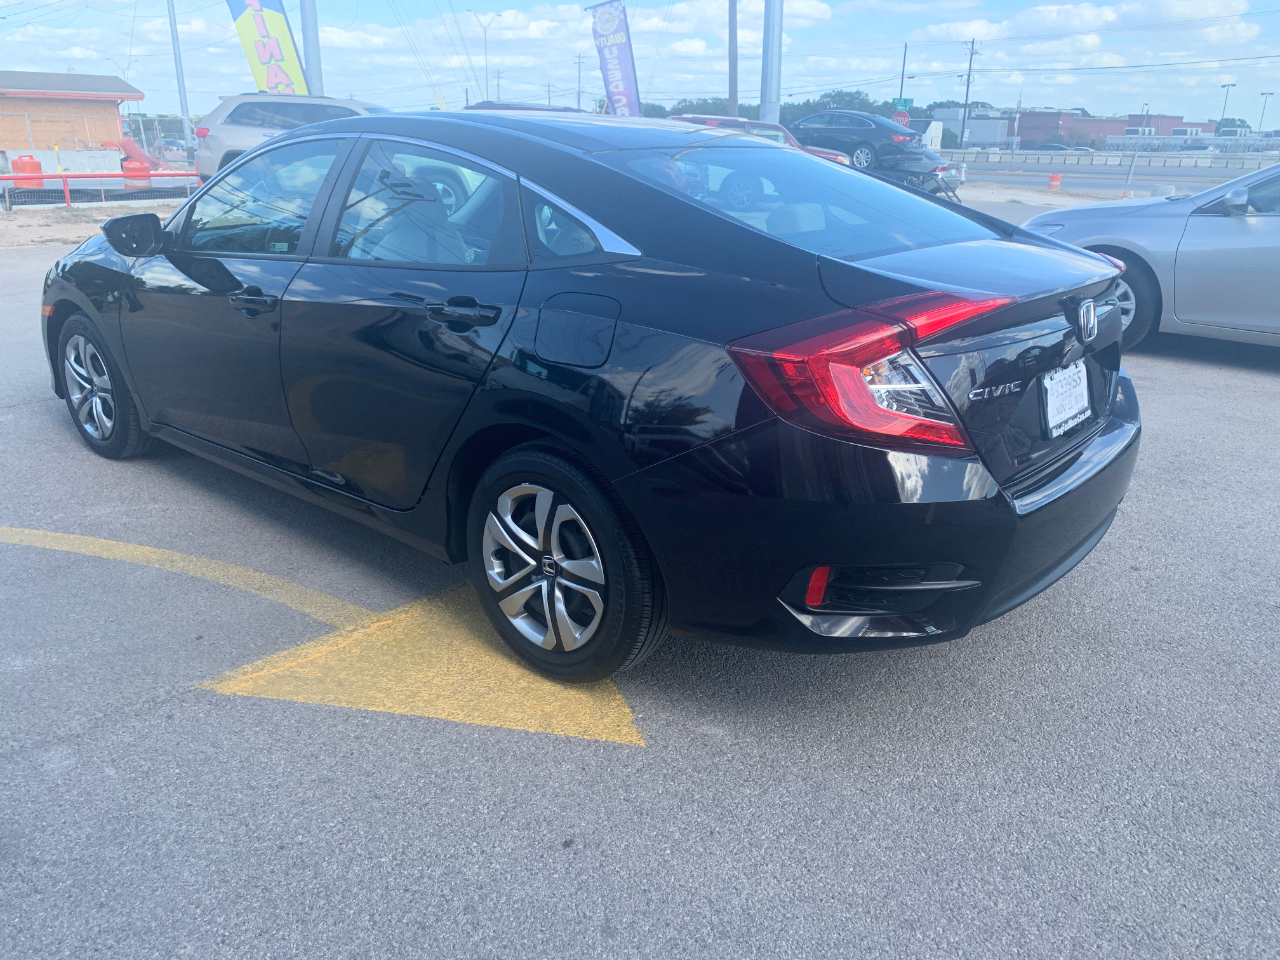 2018 Honda Civic LX Sedan CVT